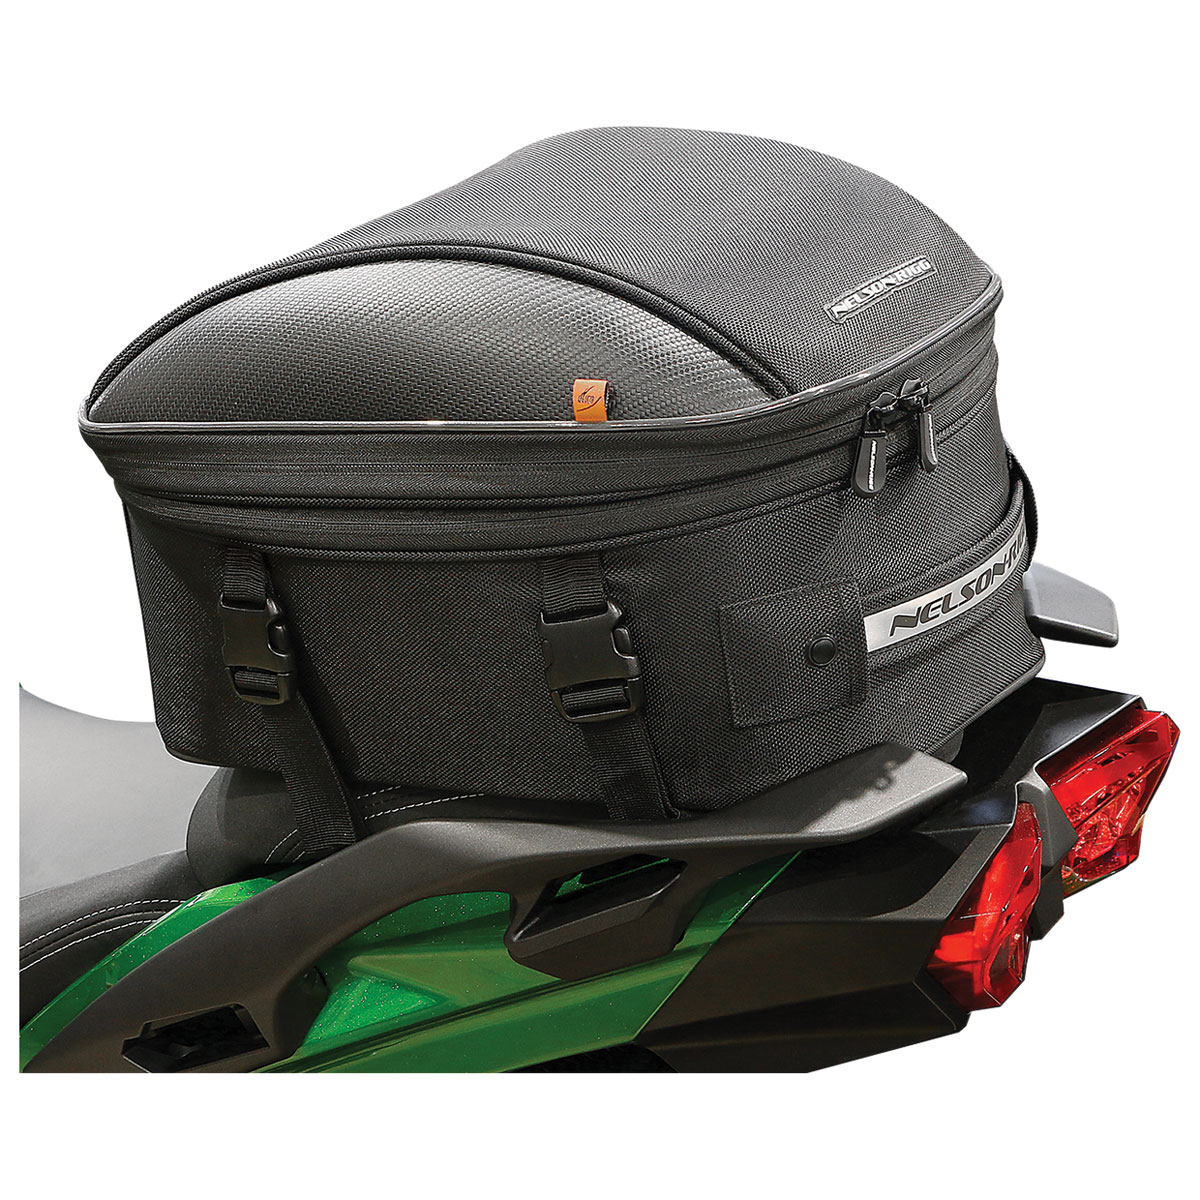 Nelson-Rigg Commuter Touring Tail Bag